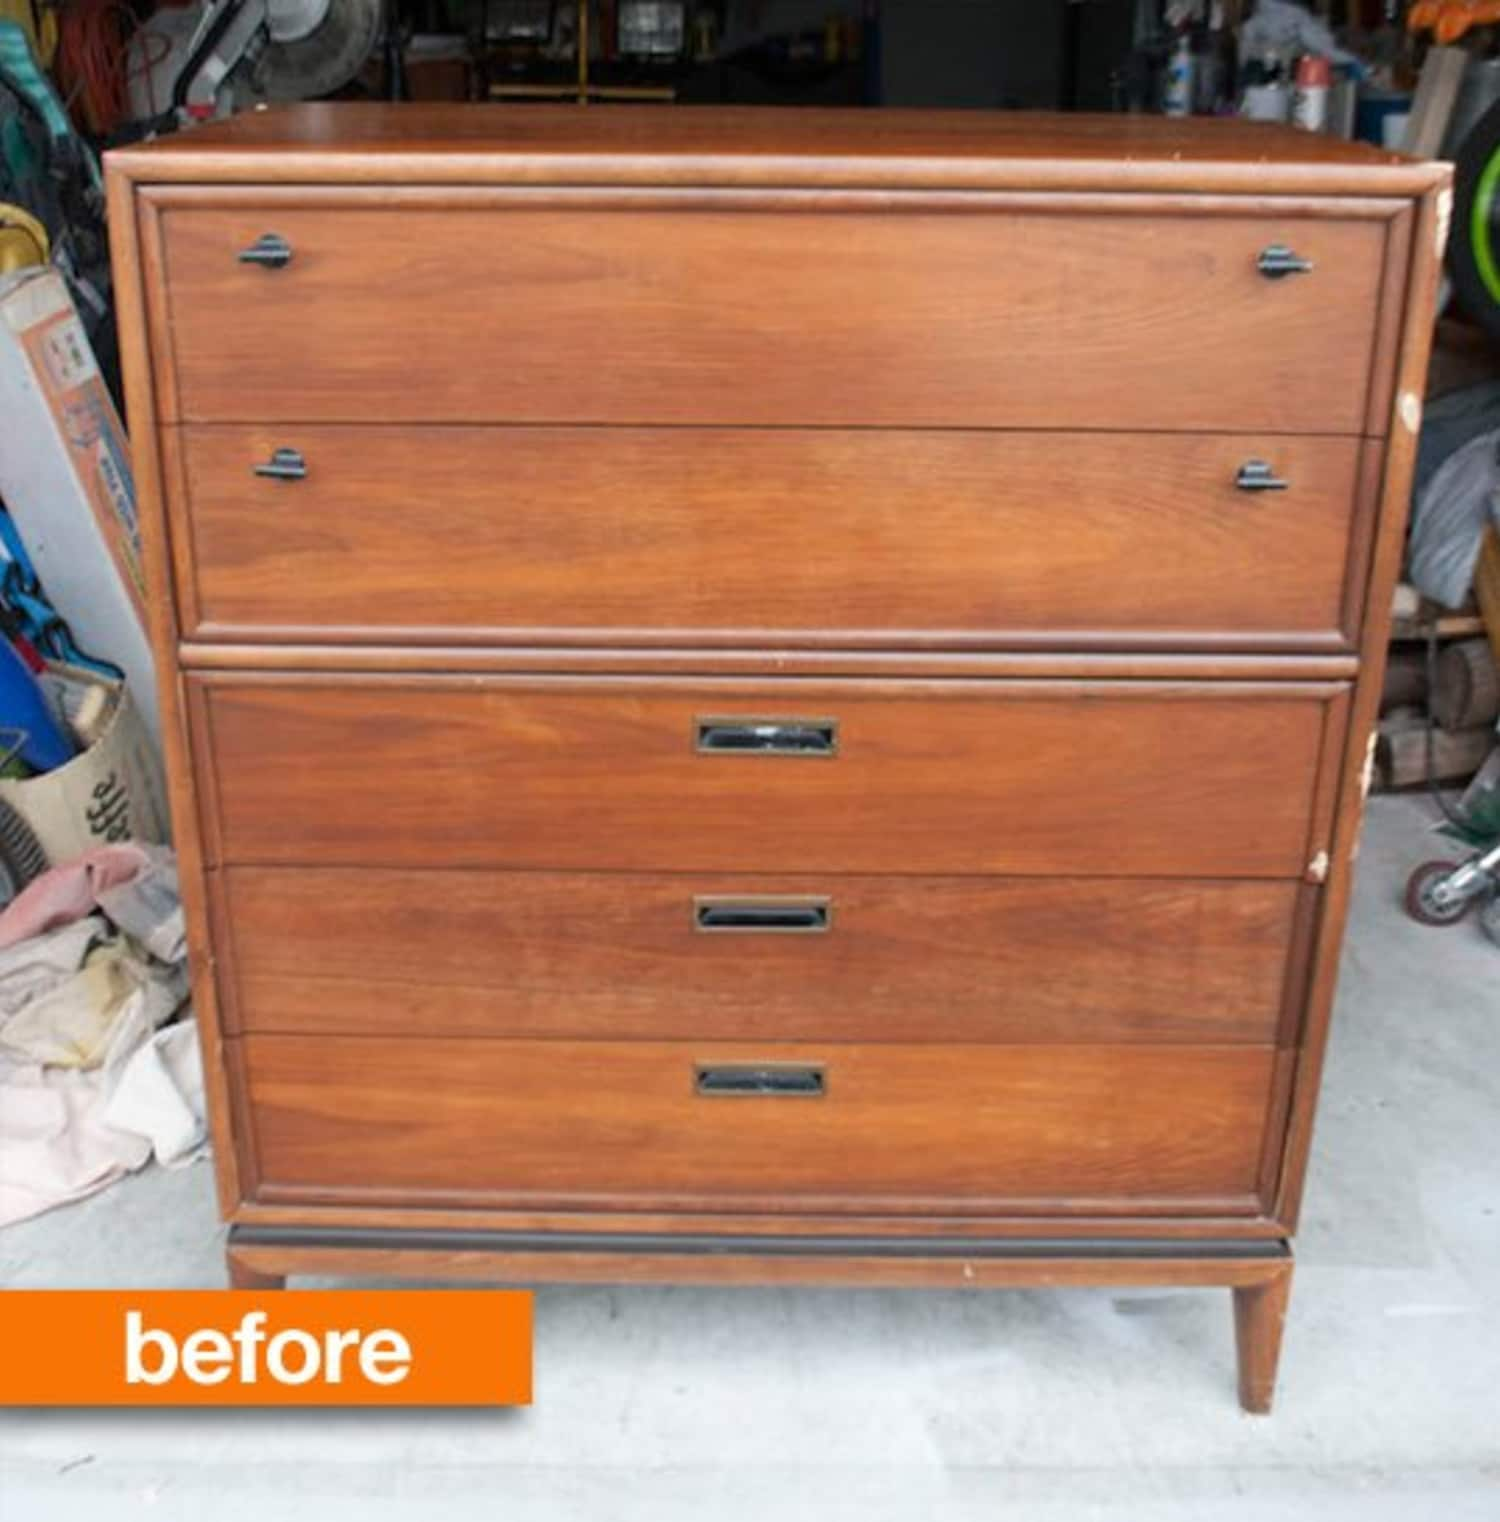 Before & After: A Vintage Dresser Gets Light and Bright